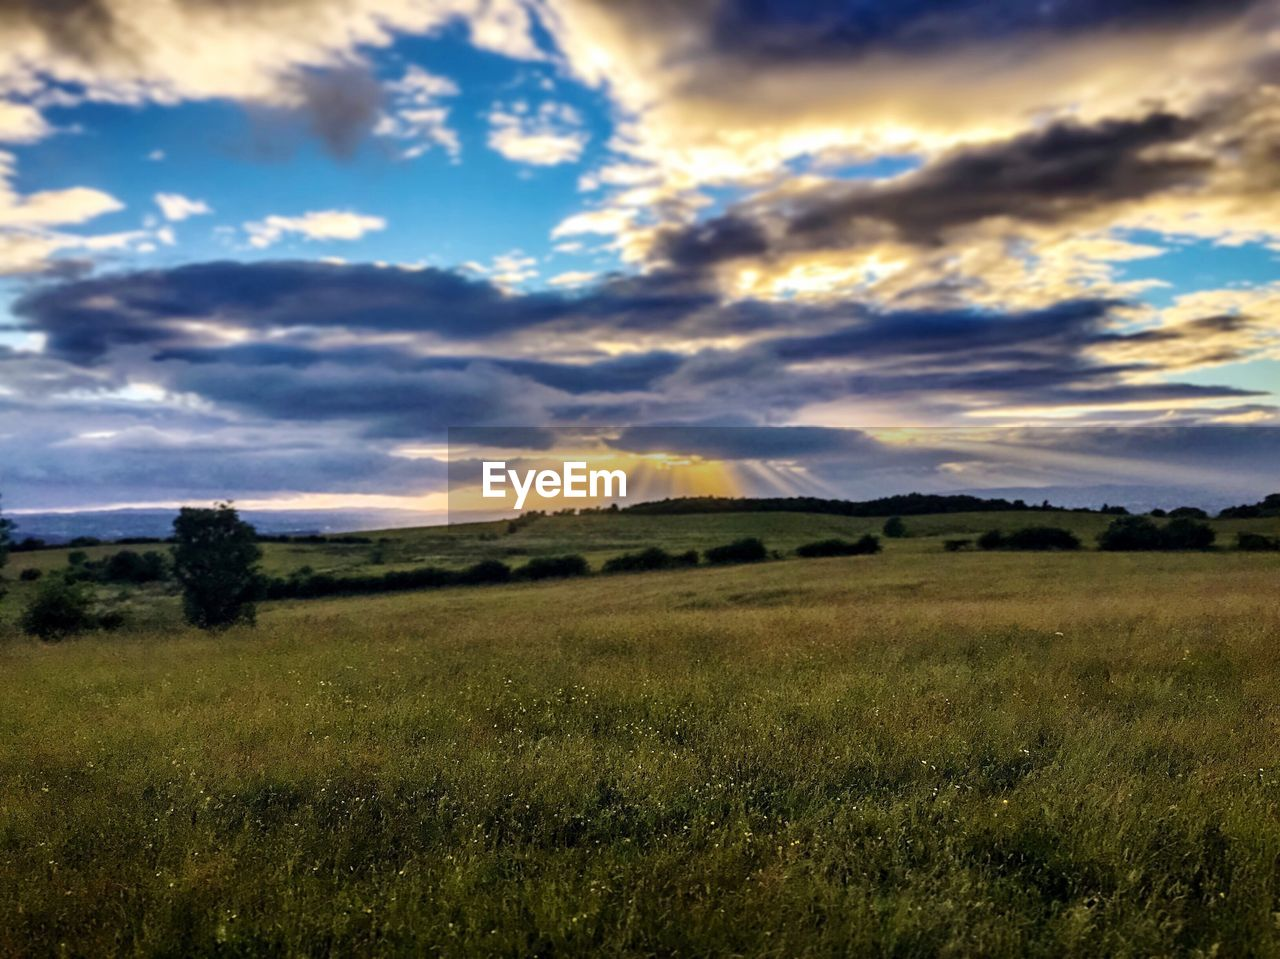 nature, grass, sky, field, landscape, cloud - sky, sunset, beauty in nature, scenics, no people, summer, outdoors, tree, day